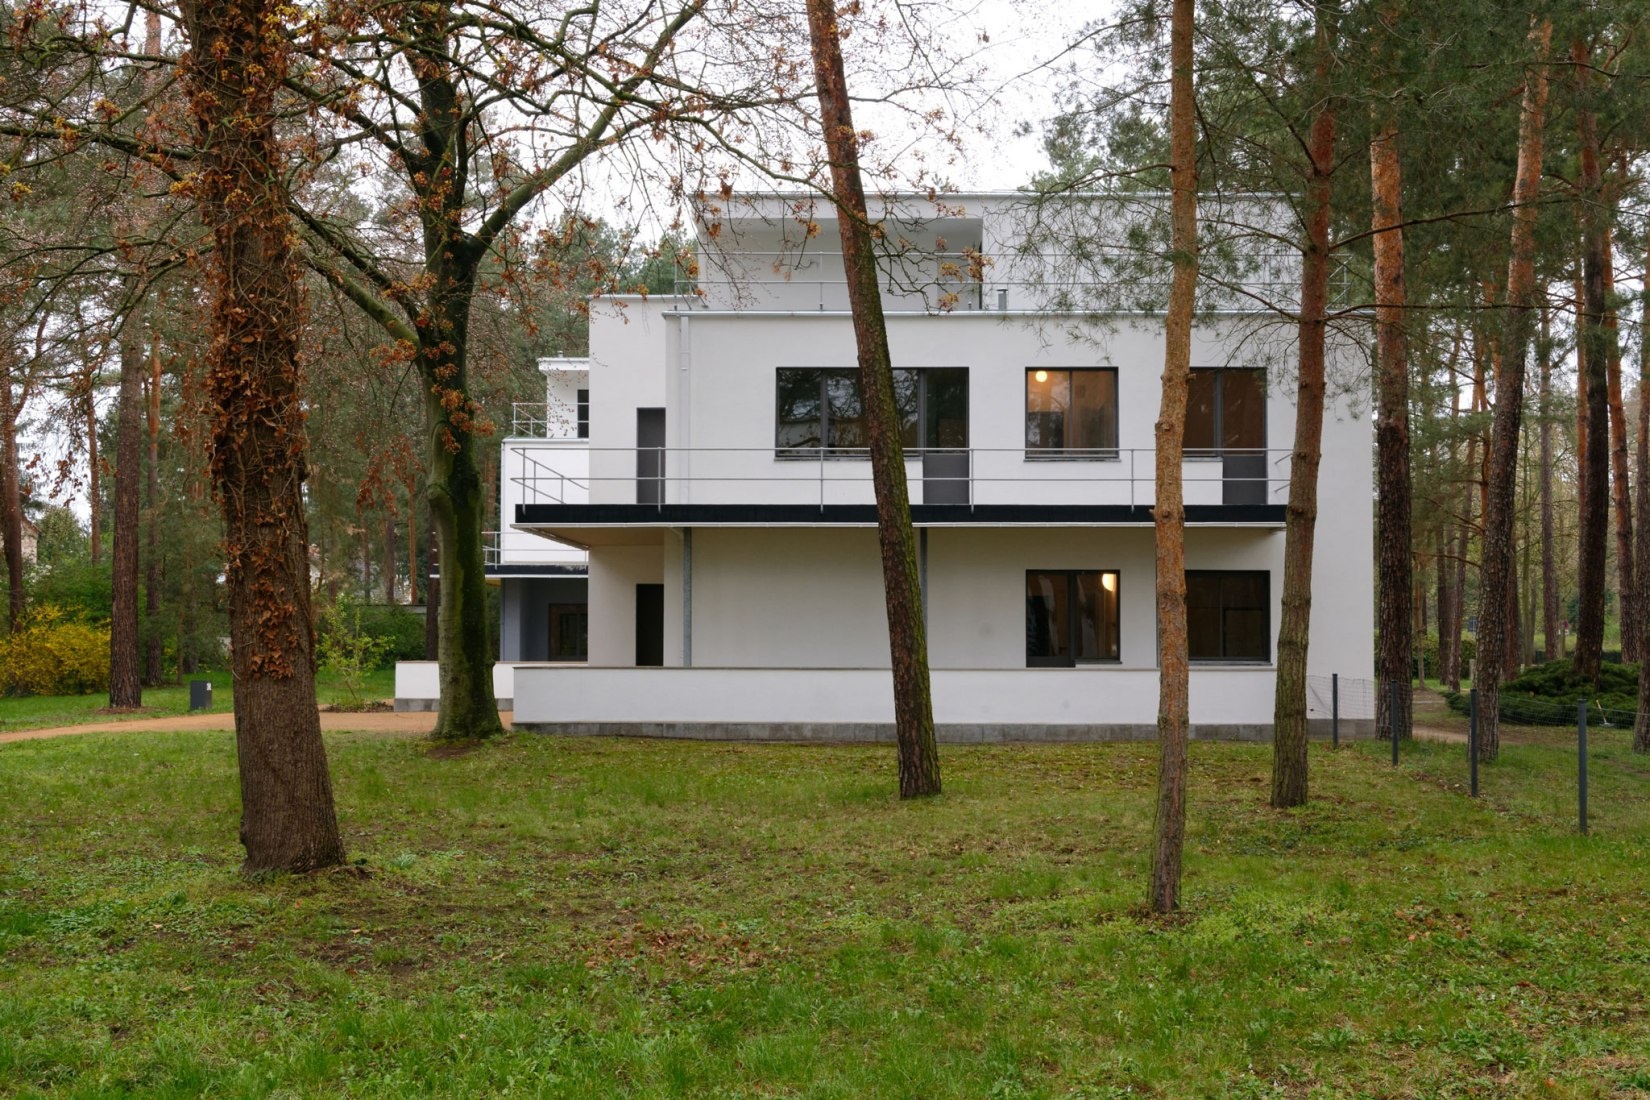 Renovated master house Kandinsky-Klee in Dessau, 2019. Photograph by Thomas Wolf © Wüstenrot Stiftung